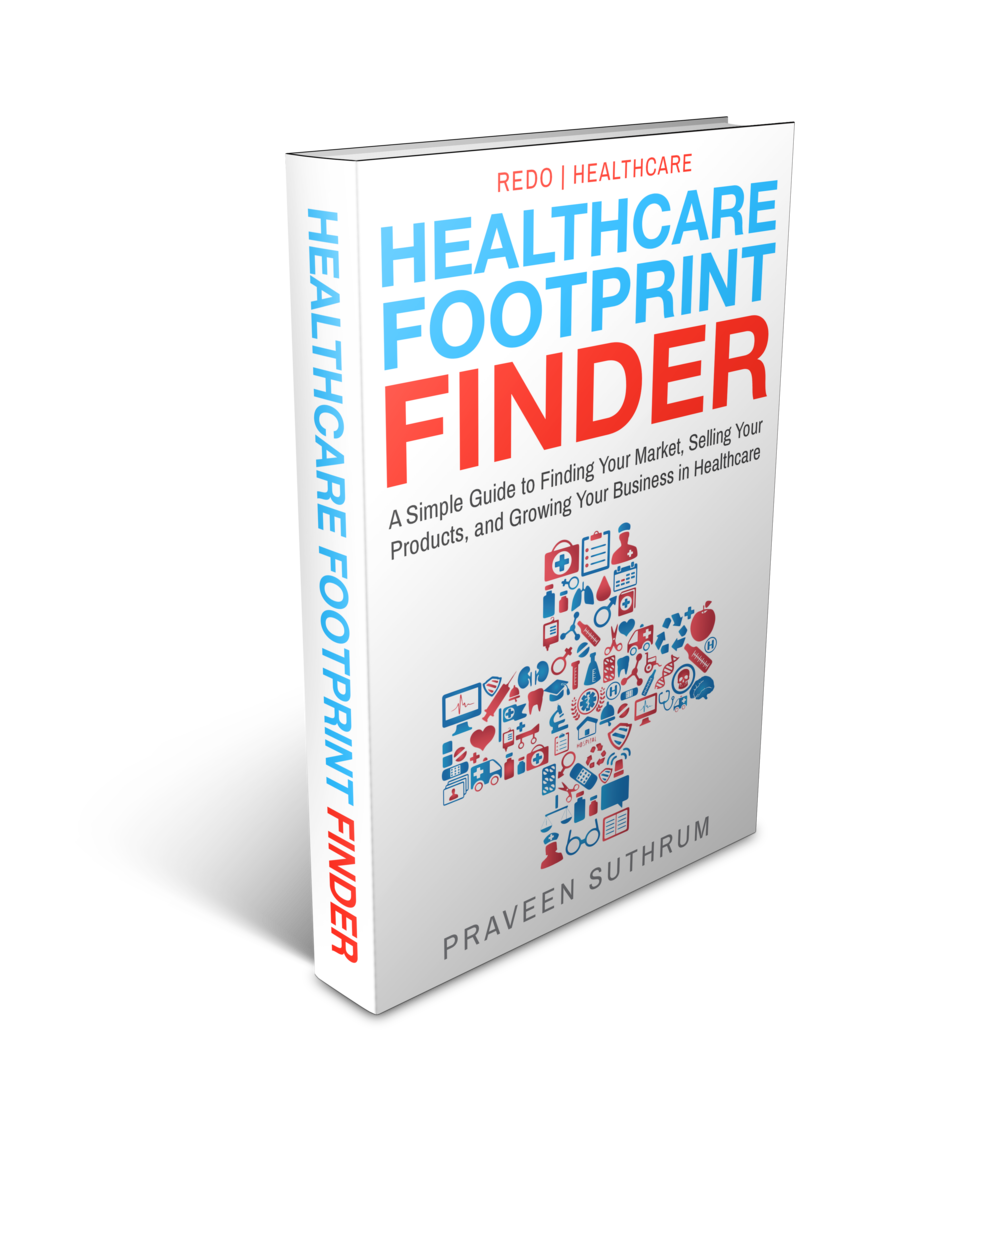 healthcare_footprint_finder